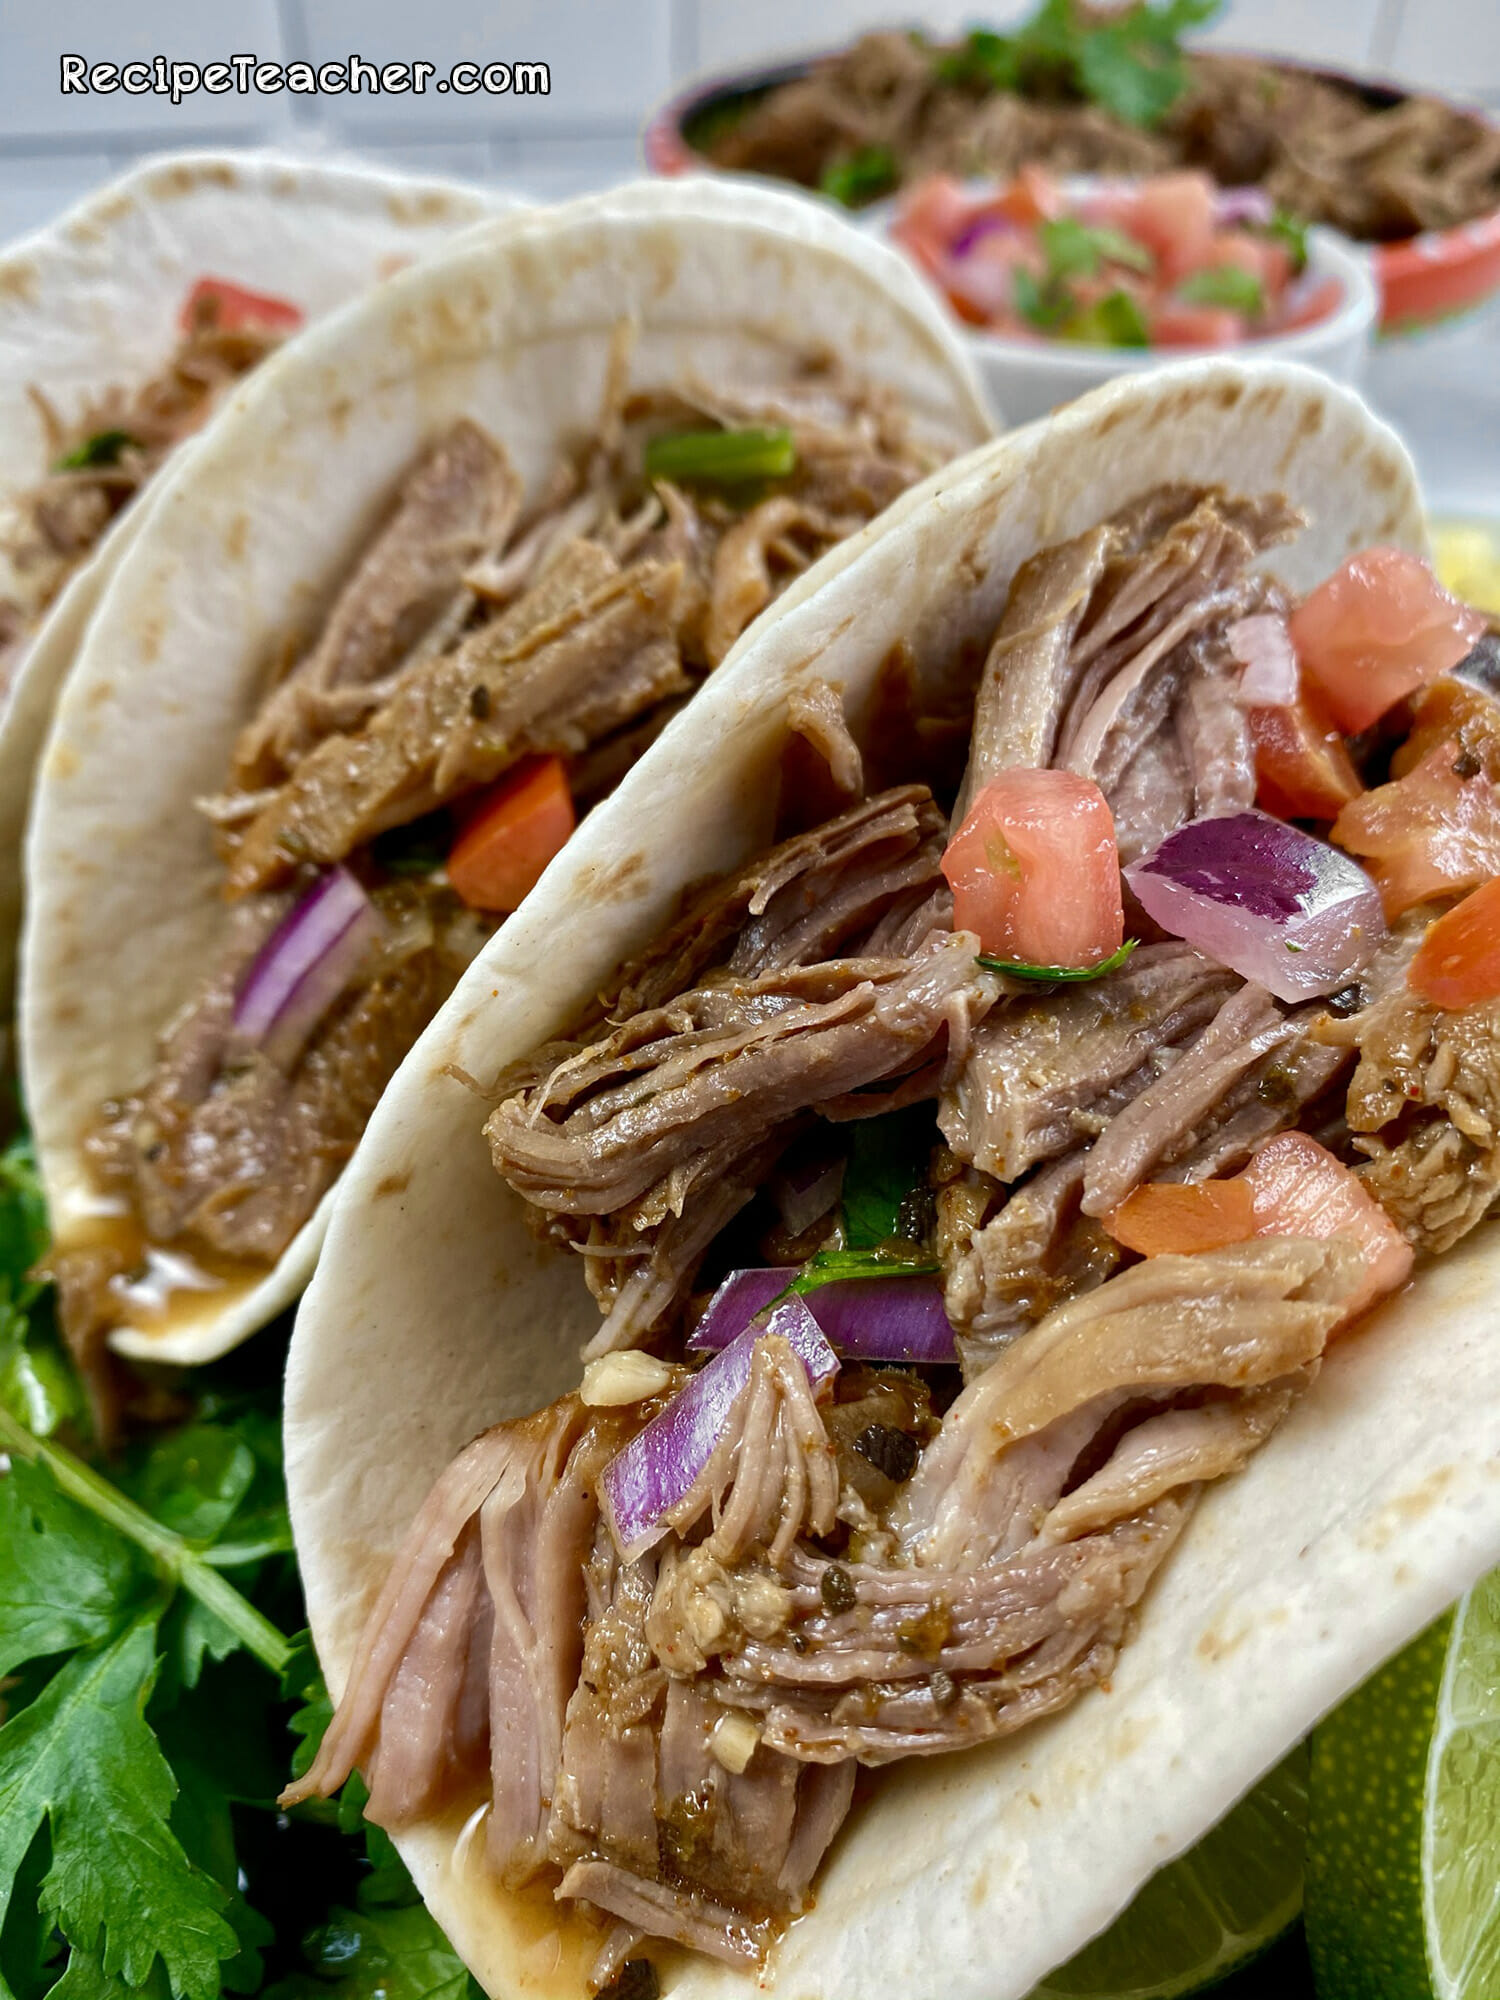 Recipe for Instant Pot Carnitas Mexican Pulled Pork